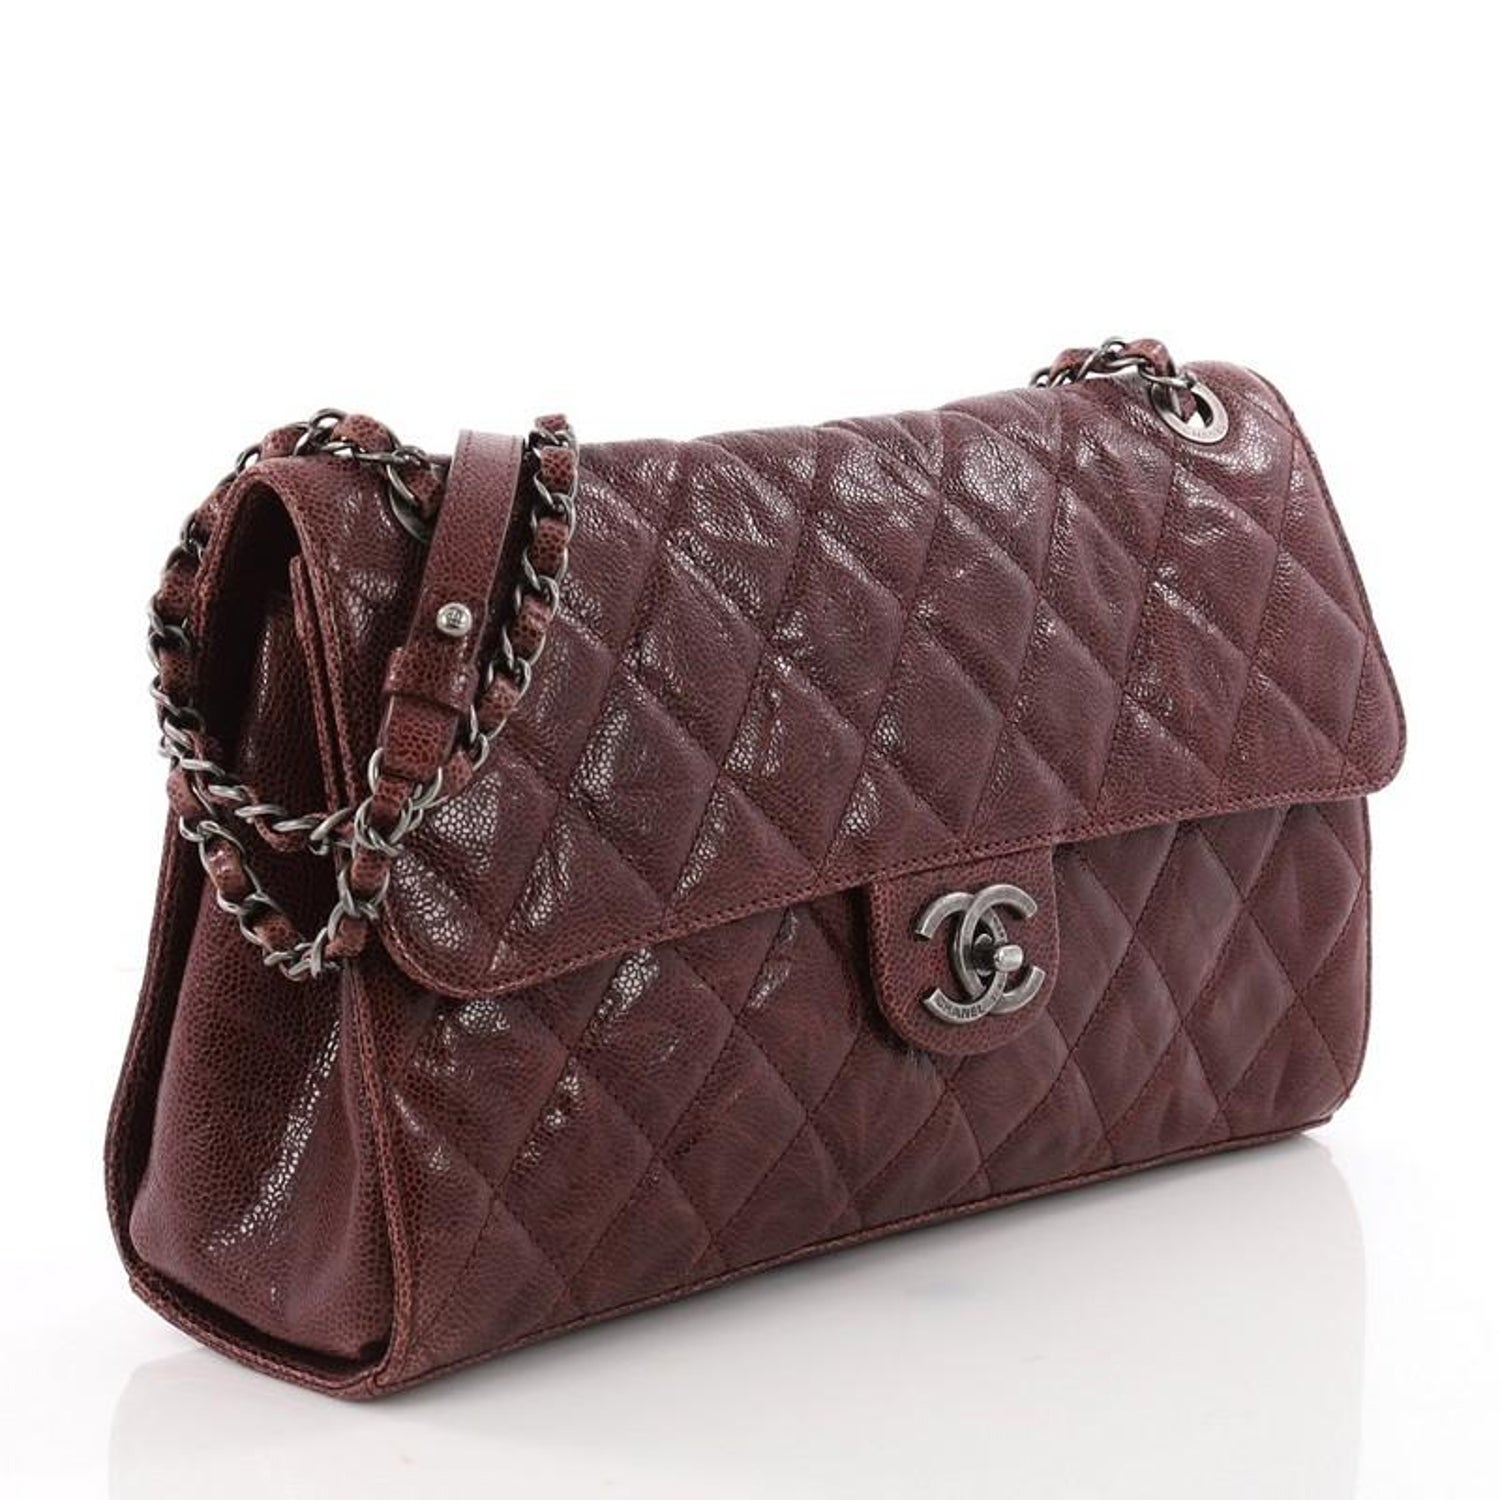 9be02641b458 Chanel CC Crave Flap Bag Quilted Glazed Caviar Jumbo at 1stdibs